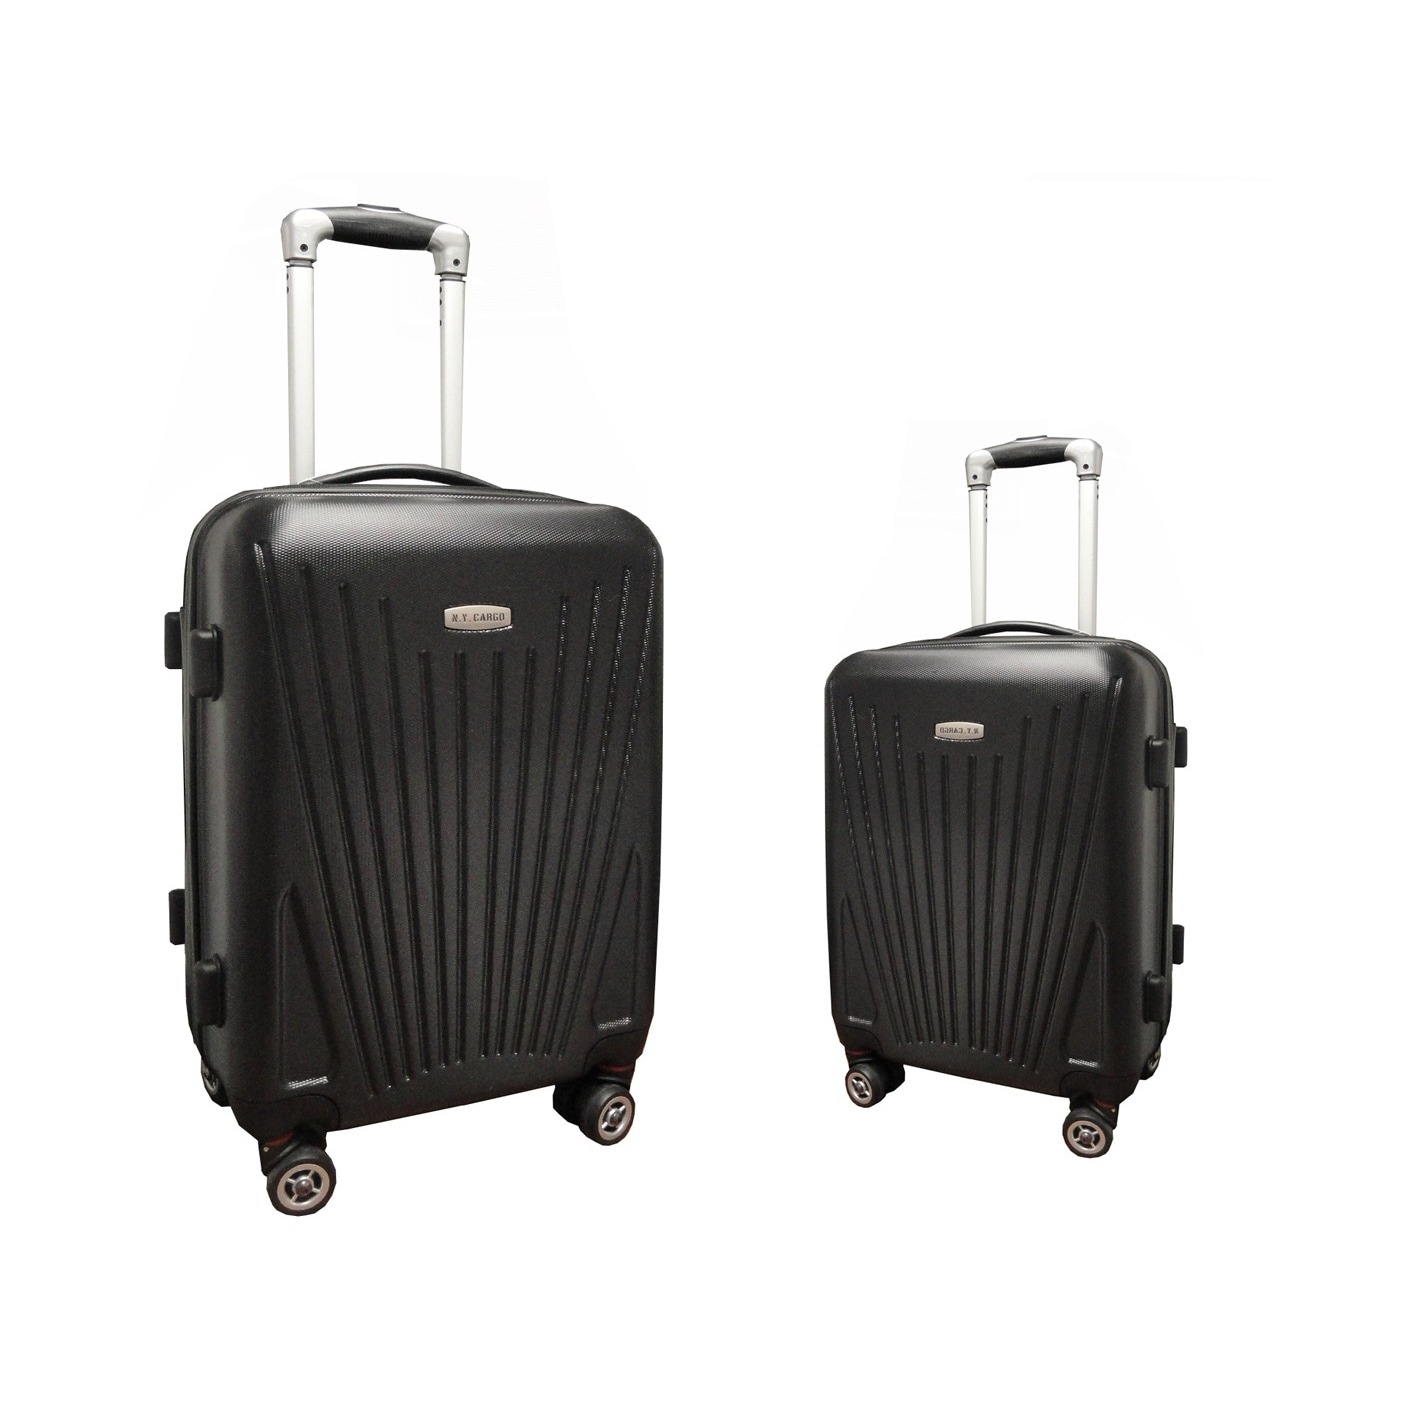 NY Cargo Hercules Cross Country 2-Piece Hardside Spinner Luggage Set at Sears.com